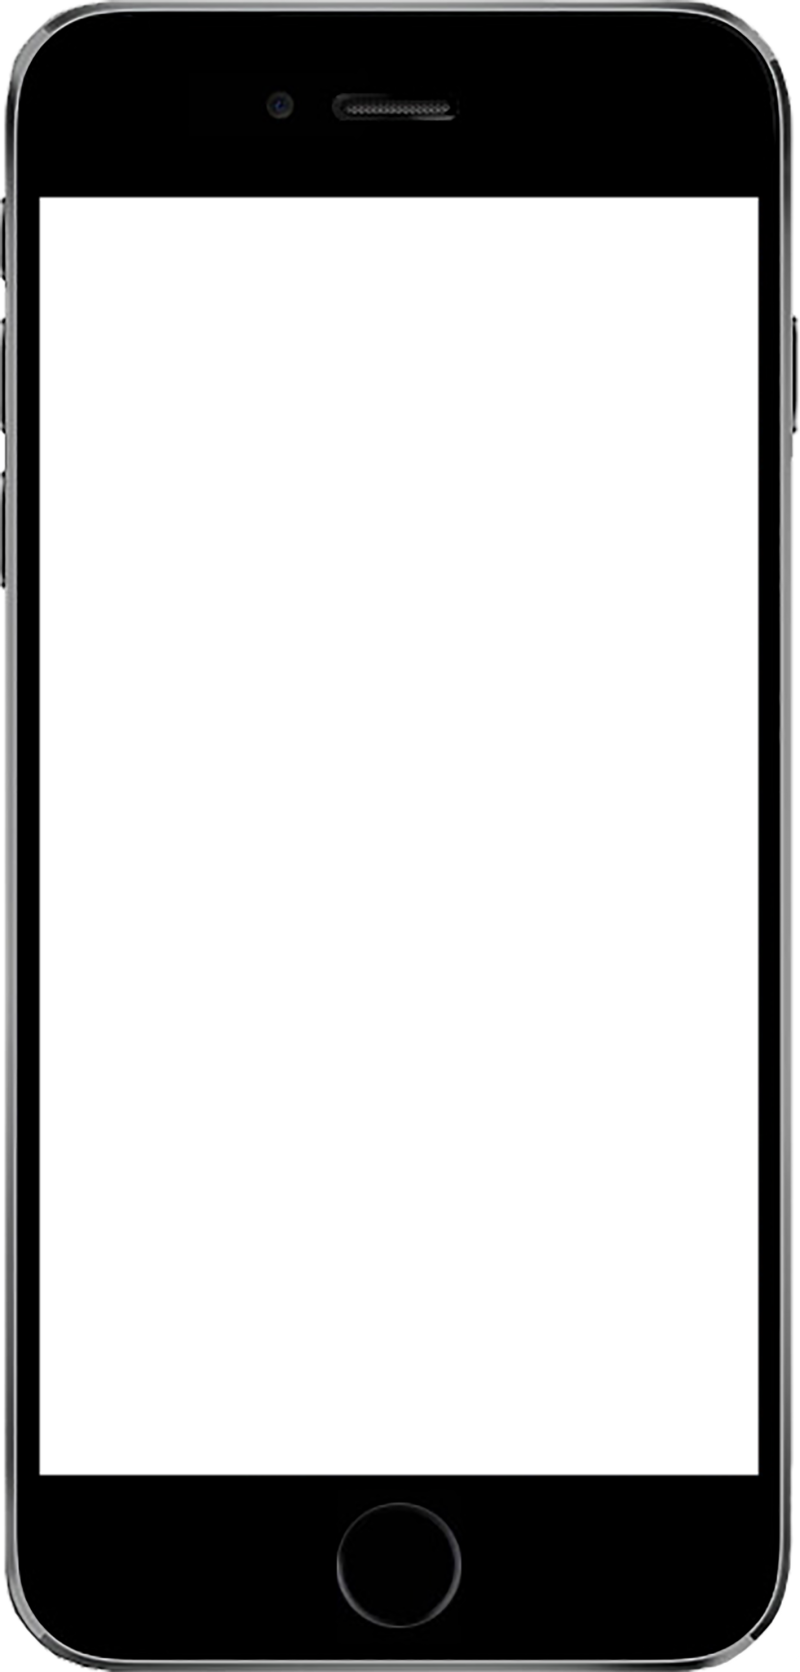 HD White Iphone 4 Png.